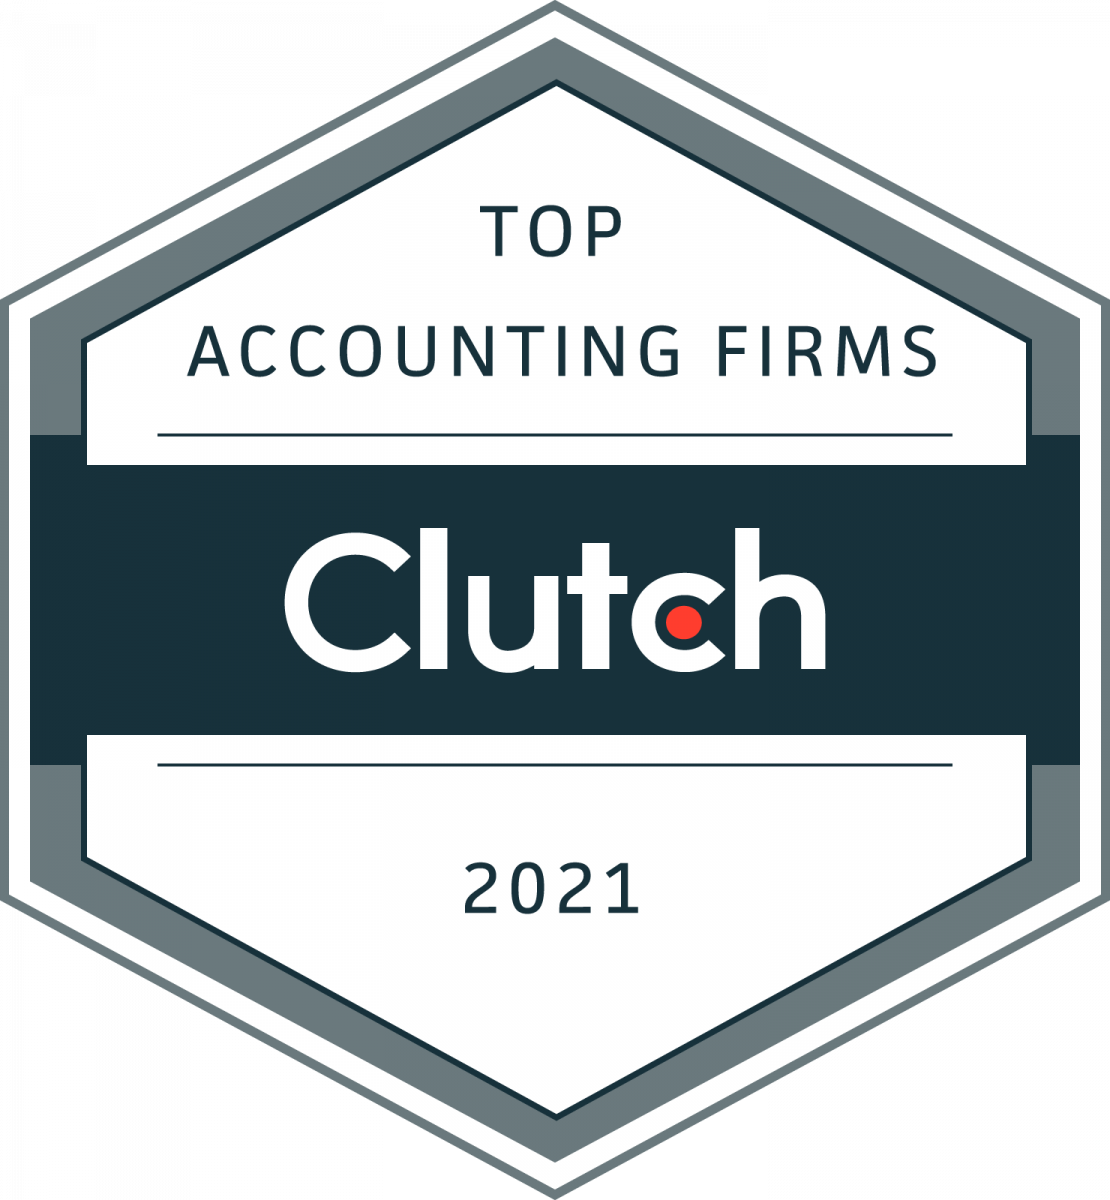 Top Accounting Firms 2021